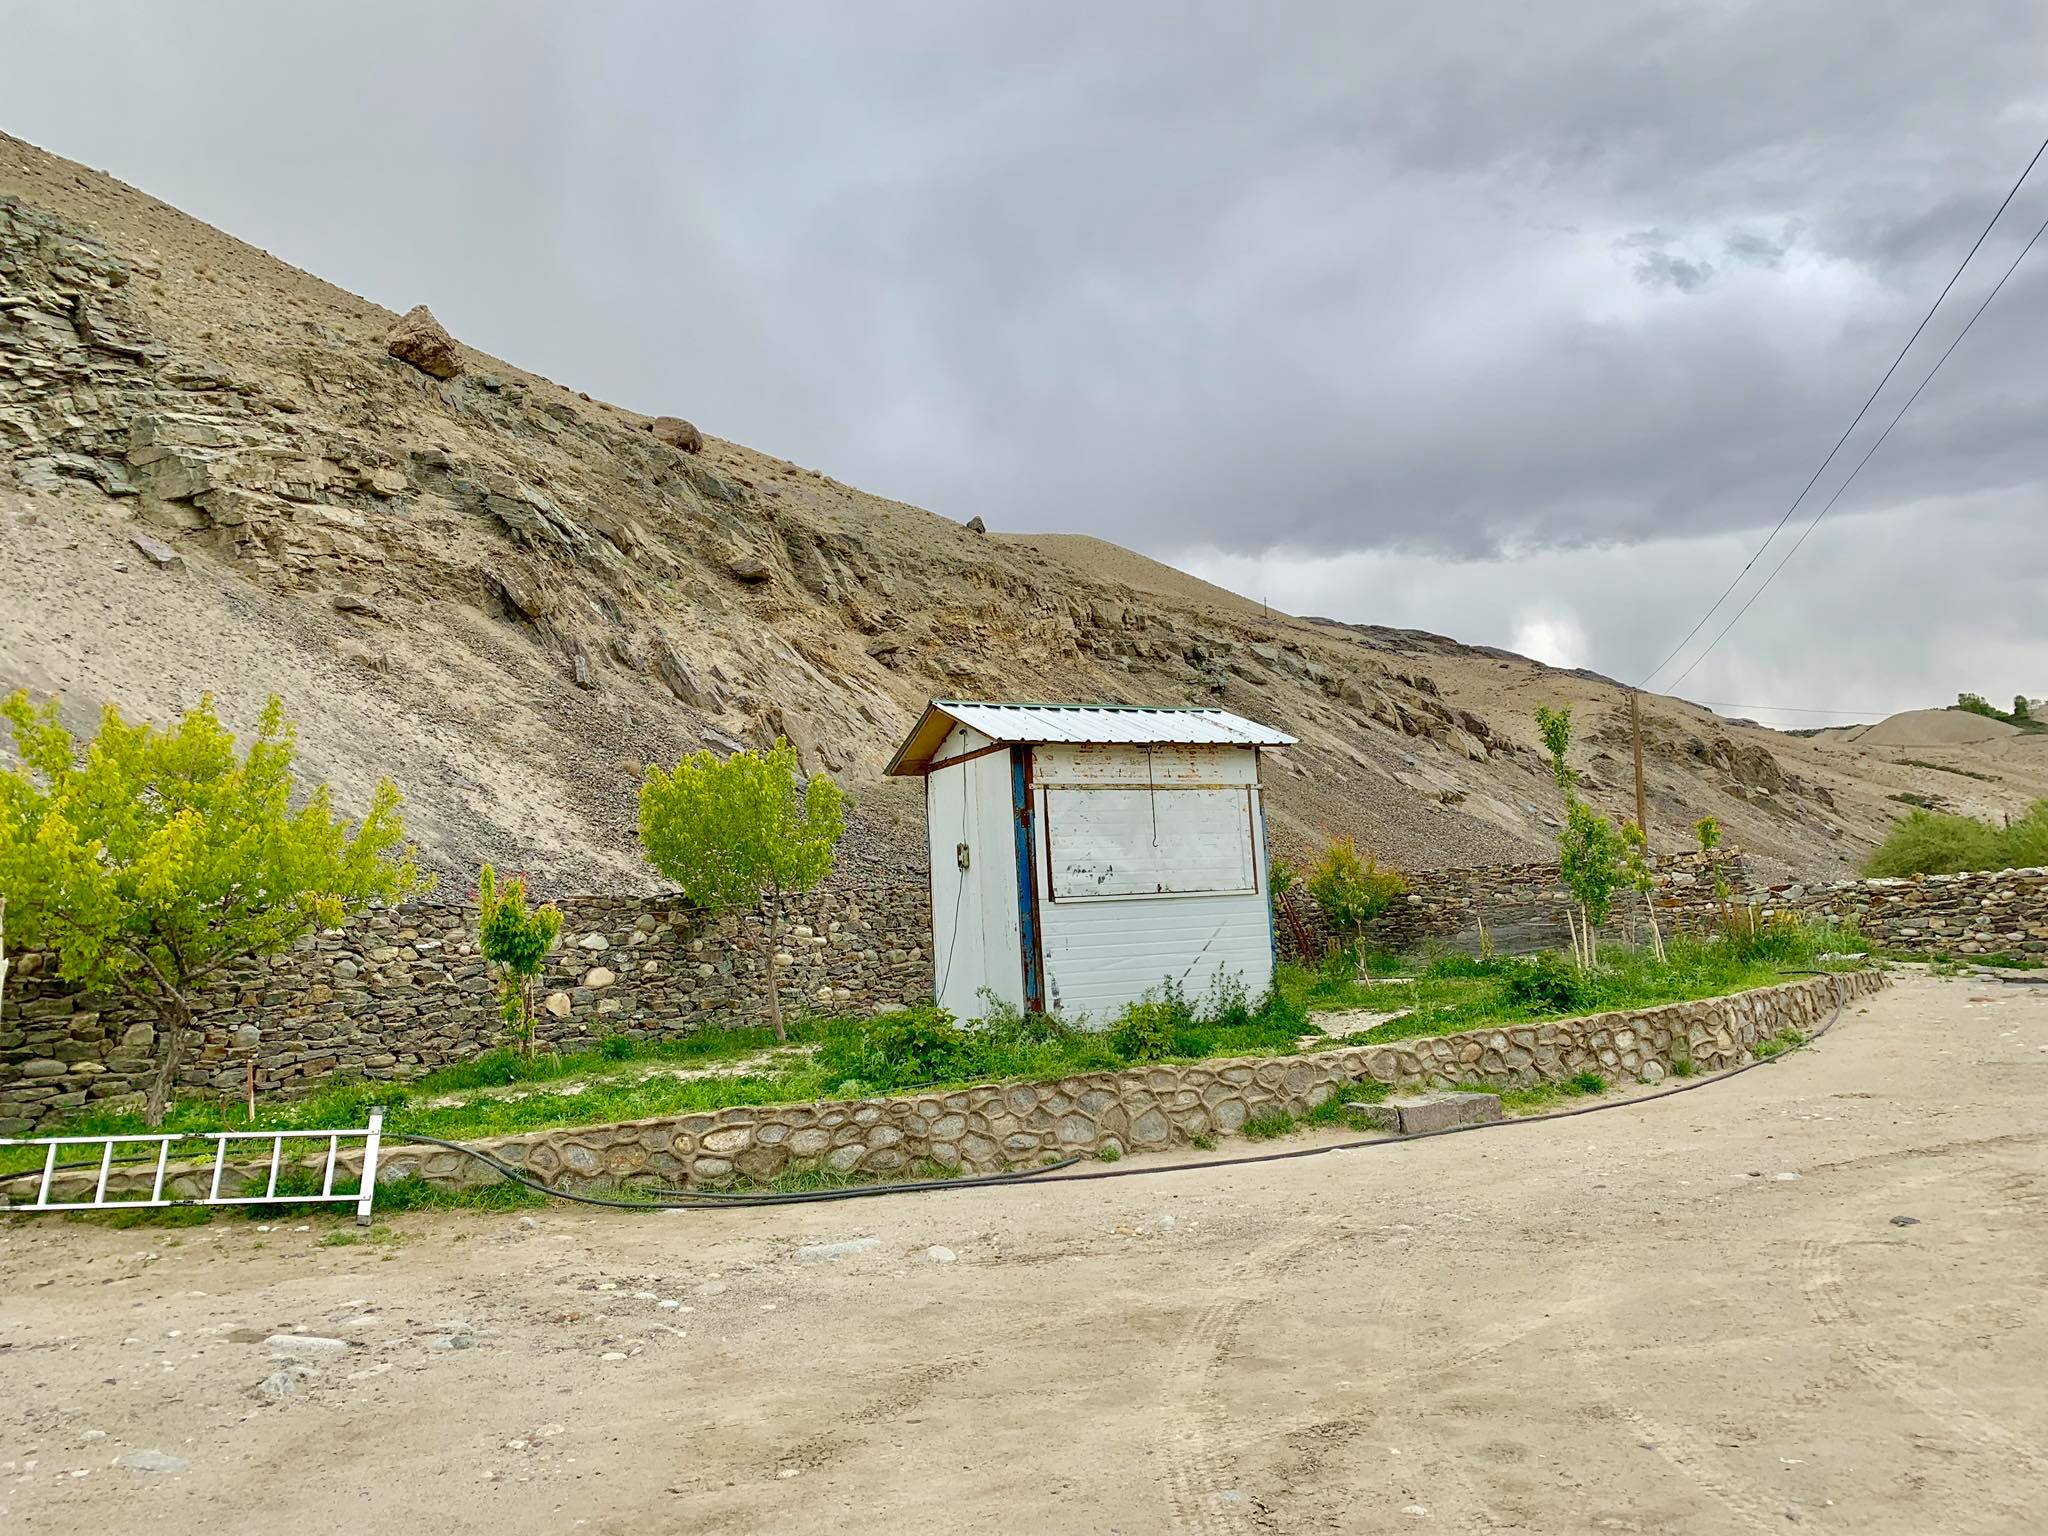 Kach Solo Travels in 2019 Driving from Ishkashim to Wakhan Valley20.jpg